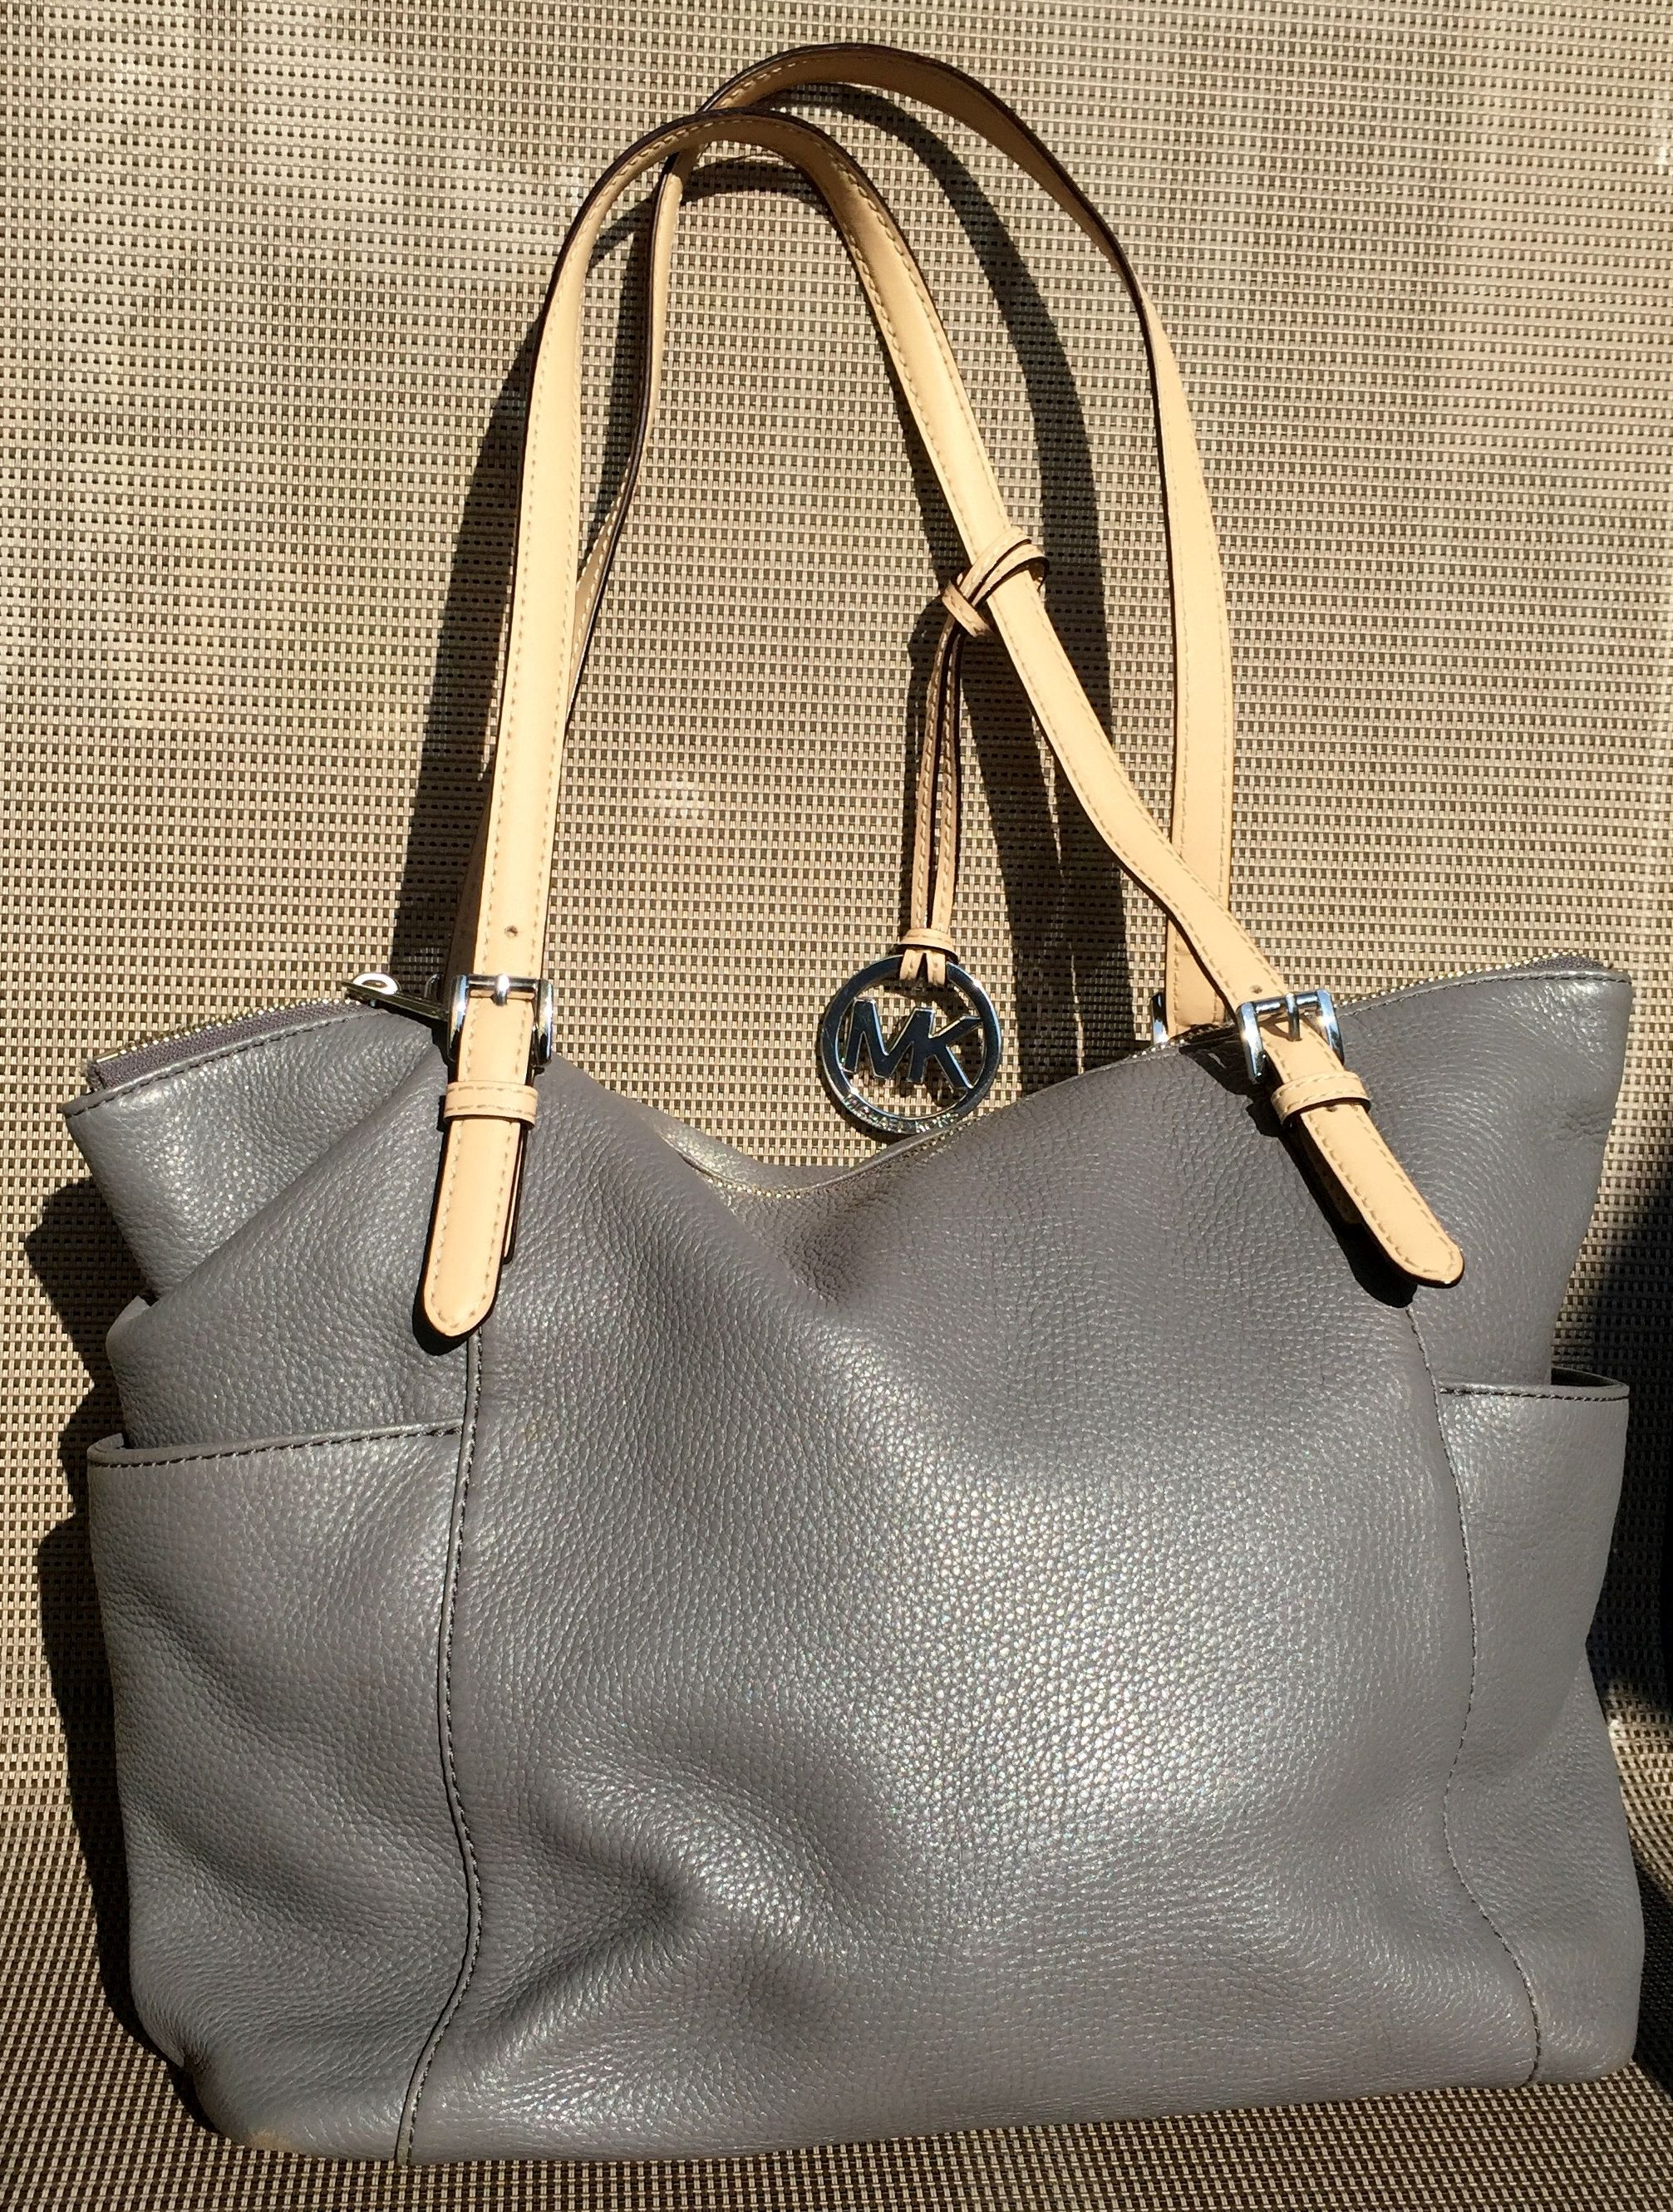 Michael Kors Medium Gray Grey Soft Leather Tote Shoulder